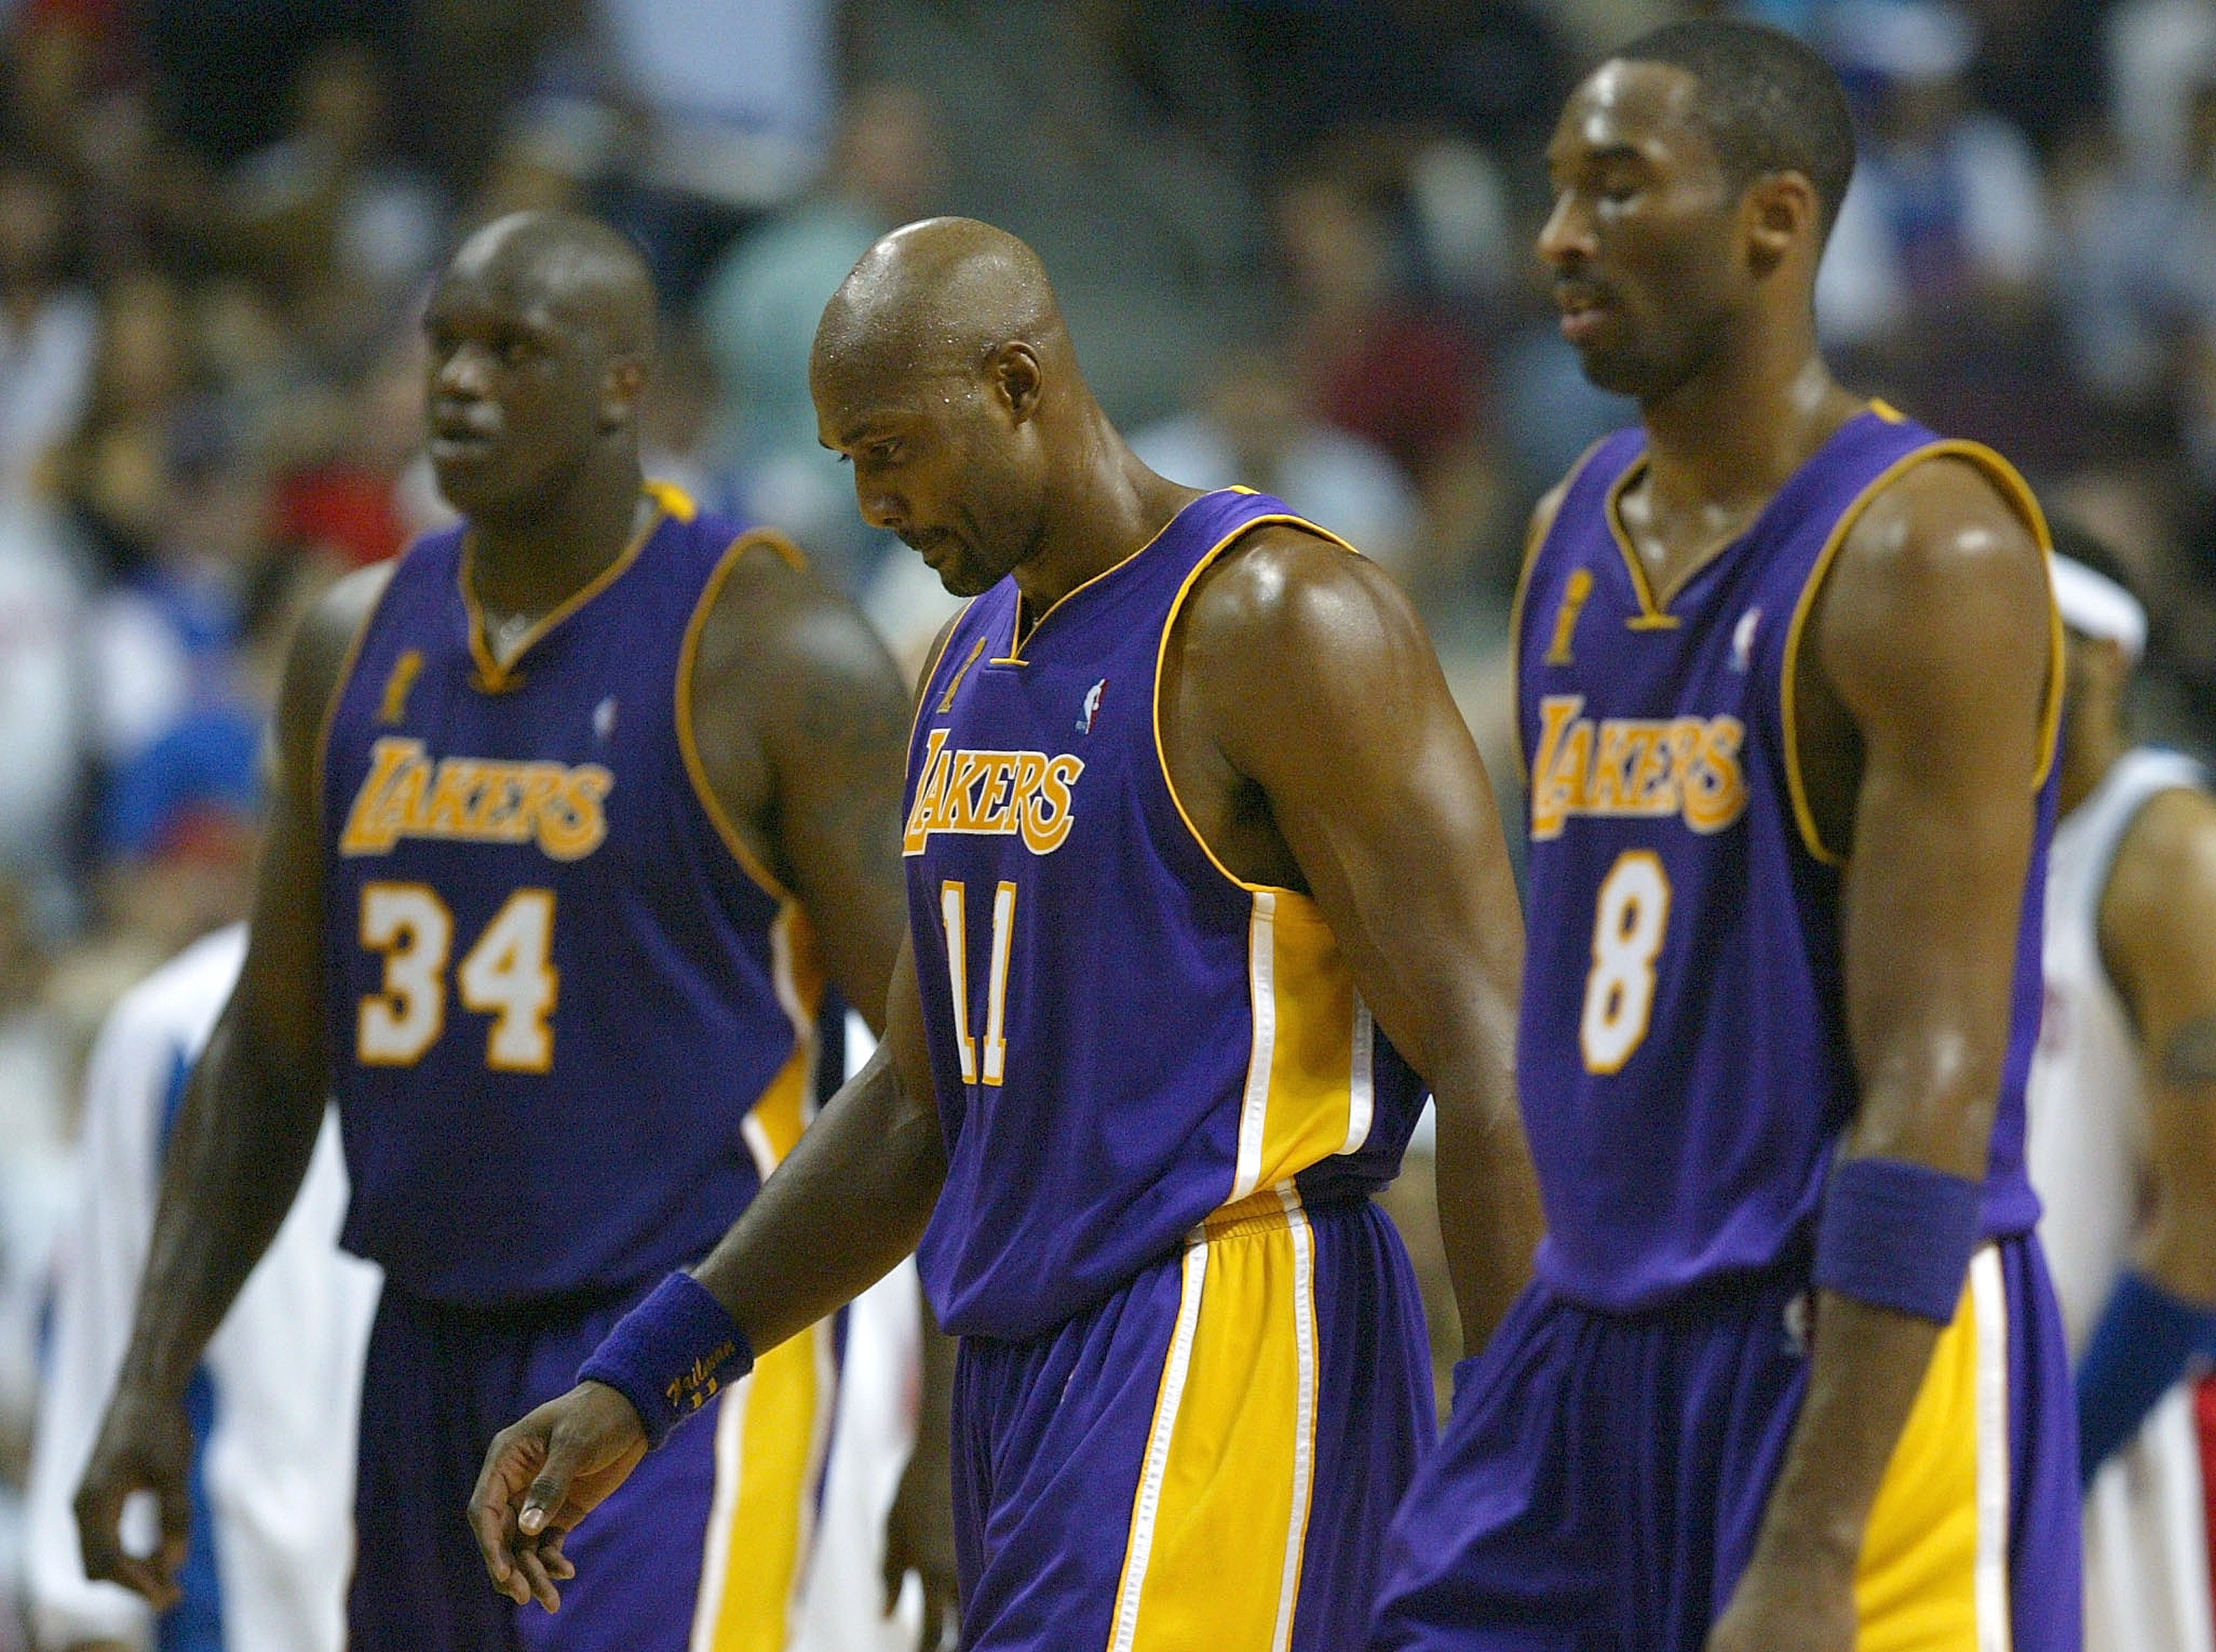 AUBURN HILLS, MI - JUNE 13:  (L-R) Shaquille O'Neal #34, Karl Malone #11 and Kobe Bryant #8 of the Los Angeles Lakers walk off the court in Game Four of the 2004 NBA Finals against the Detroit Pistons on June 13, 2004 at The Palace of Auburn Hills in Aubu